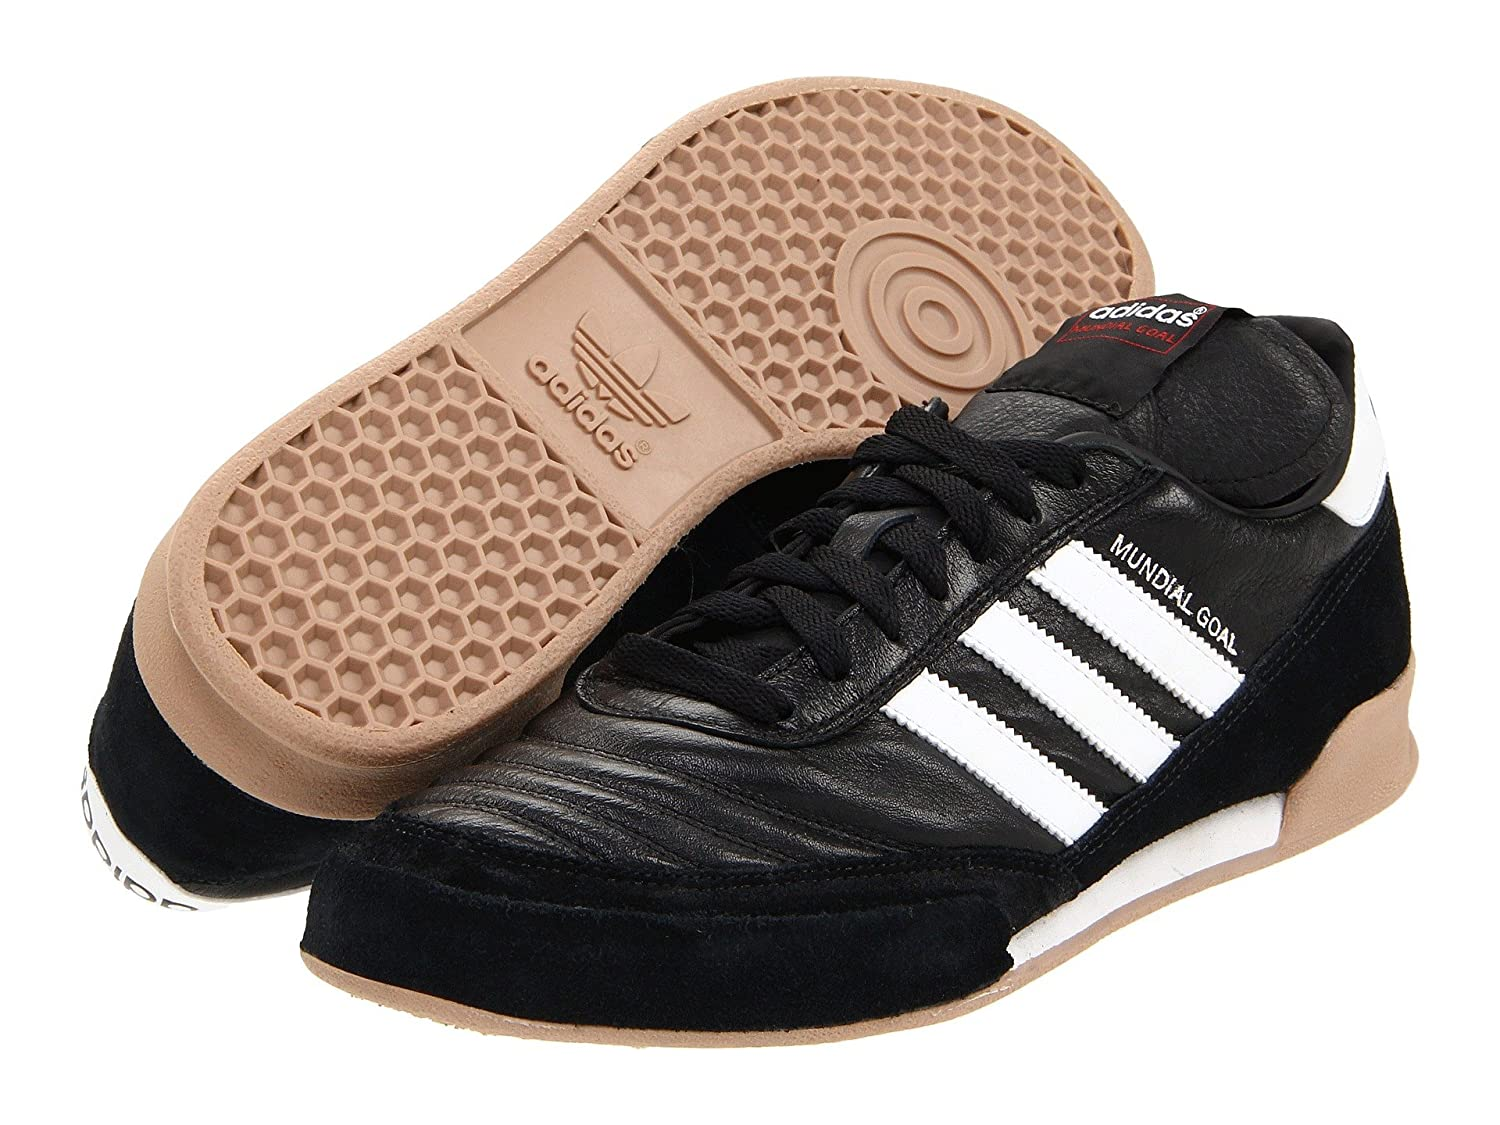 (アディダス) adidas メンズサッカーシューズ靴 Mundial Goal Black/Running White 4.5 (22.5cm) D Medium B07BQL42PK